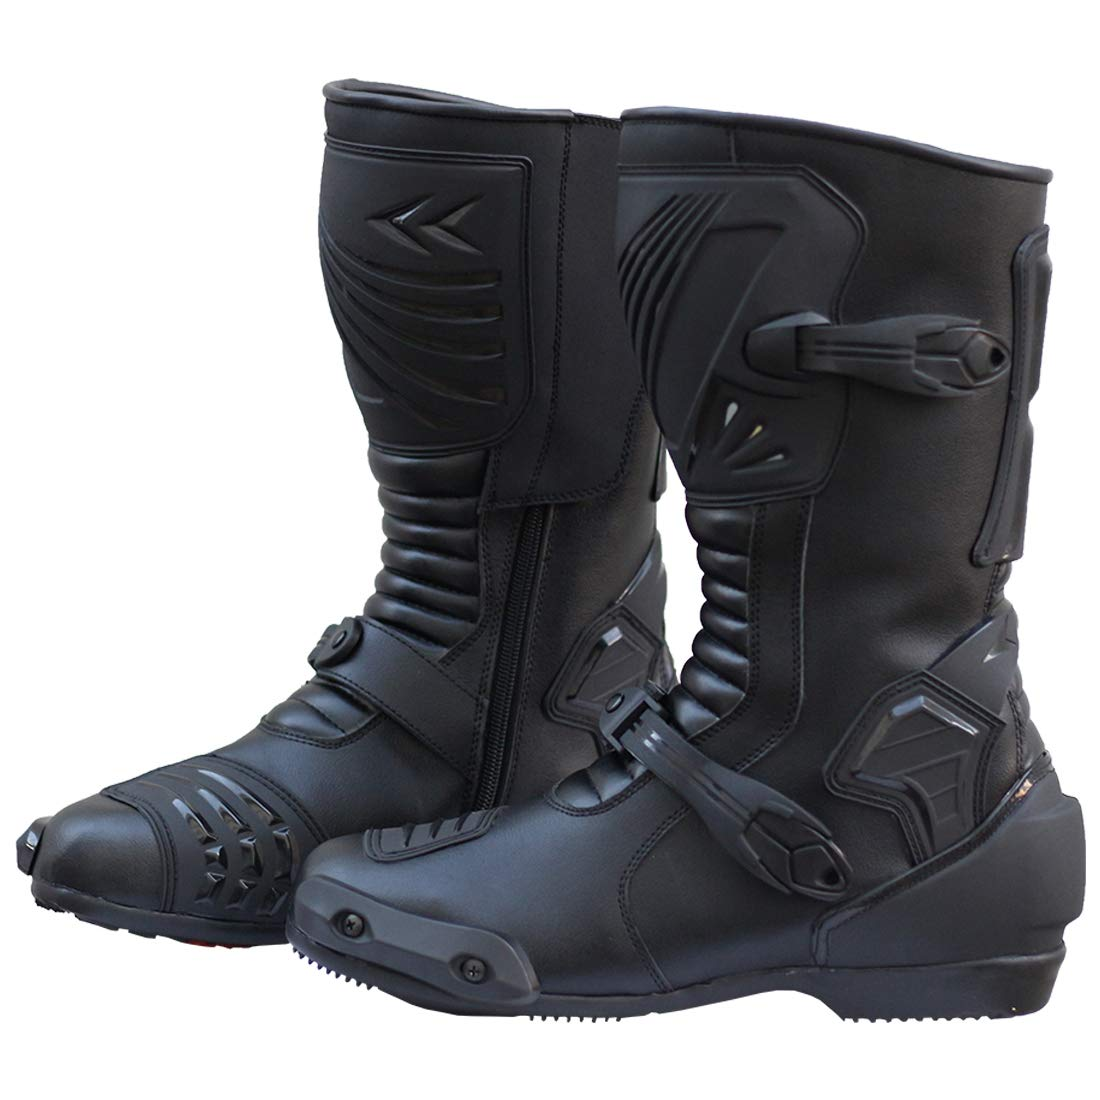 Motorcycle Riding Waterproof Leather Anti-Skid Sports Gear Outdoor Racing Boots (10.5) Black